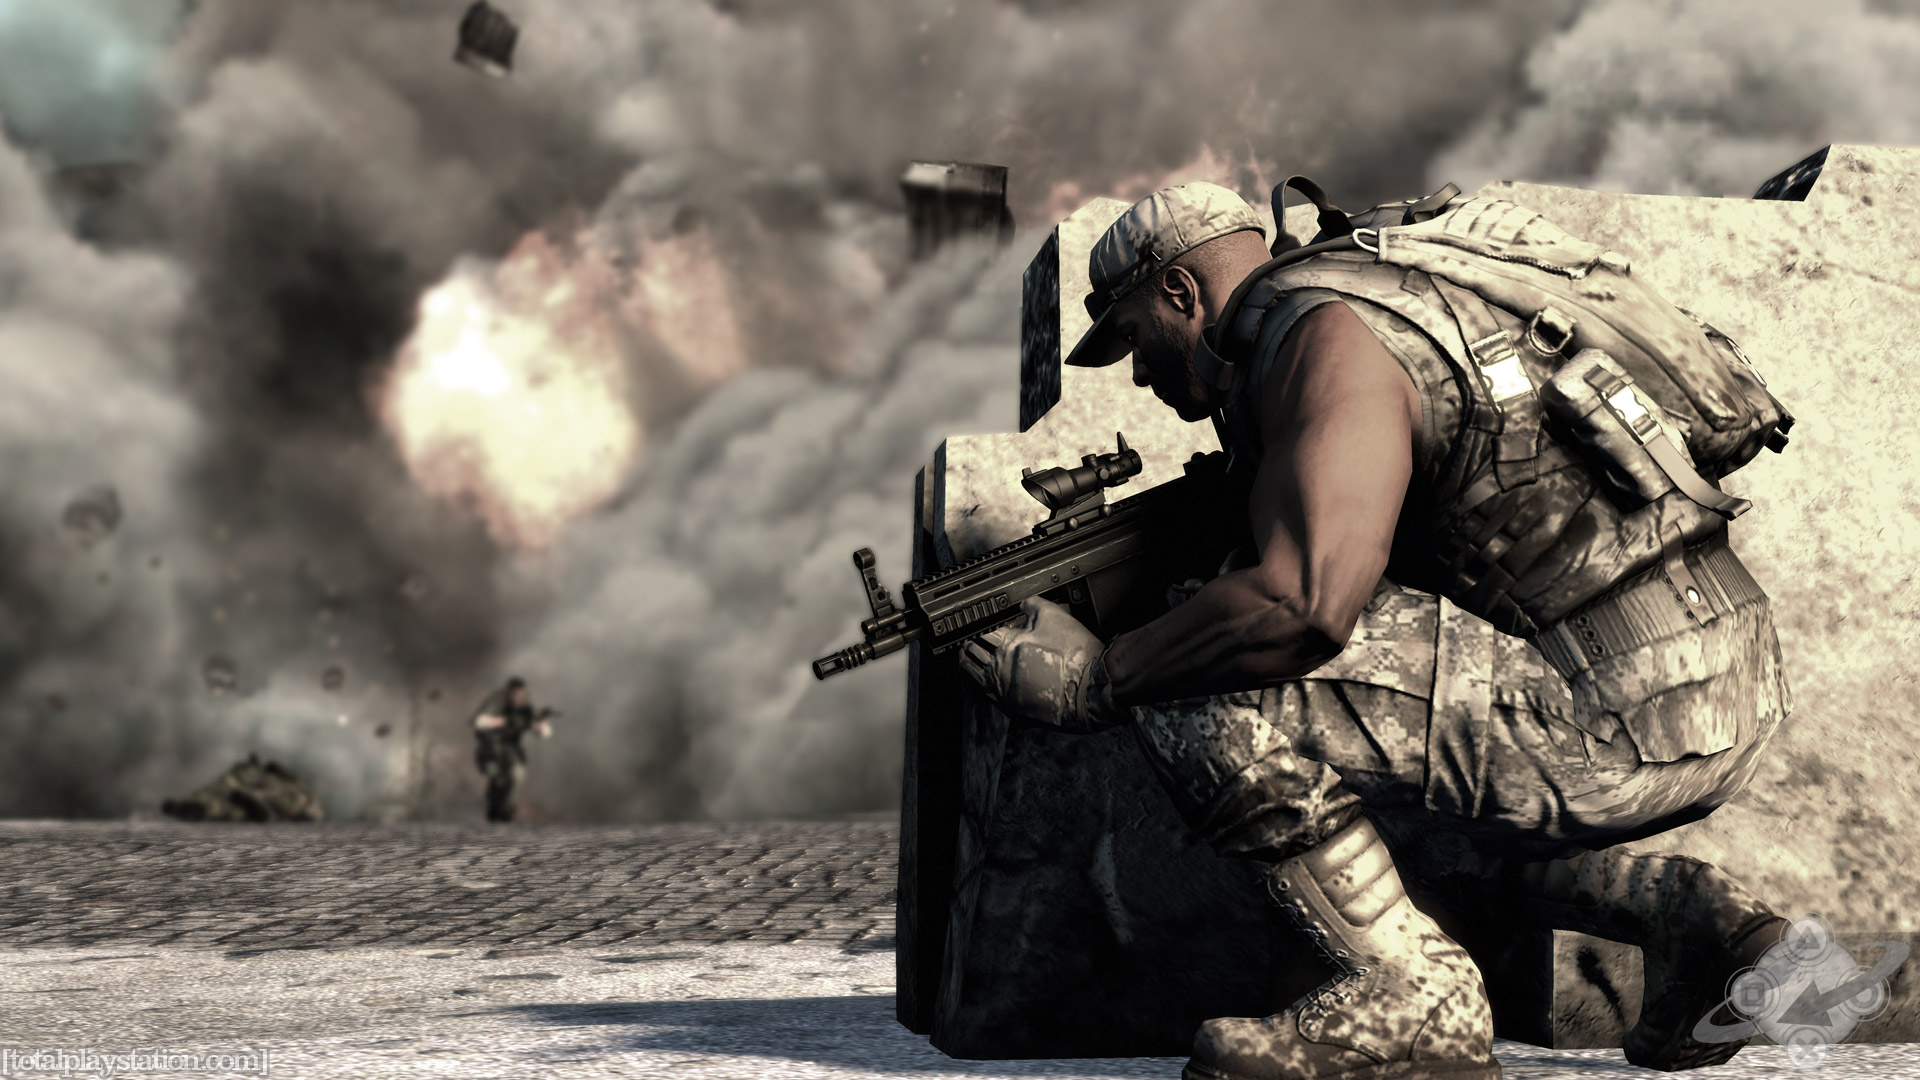 Cool Navy Seal Wallpapers Top HD Images For 1920x1080